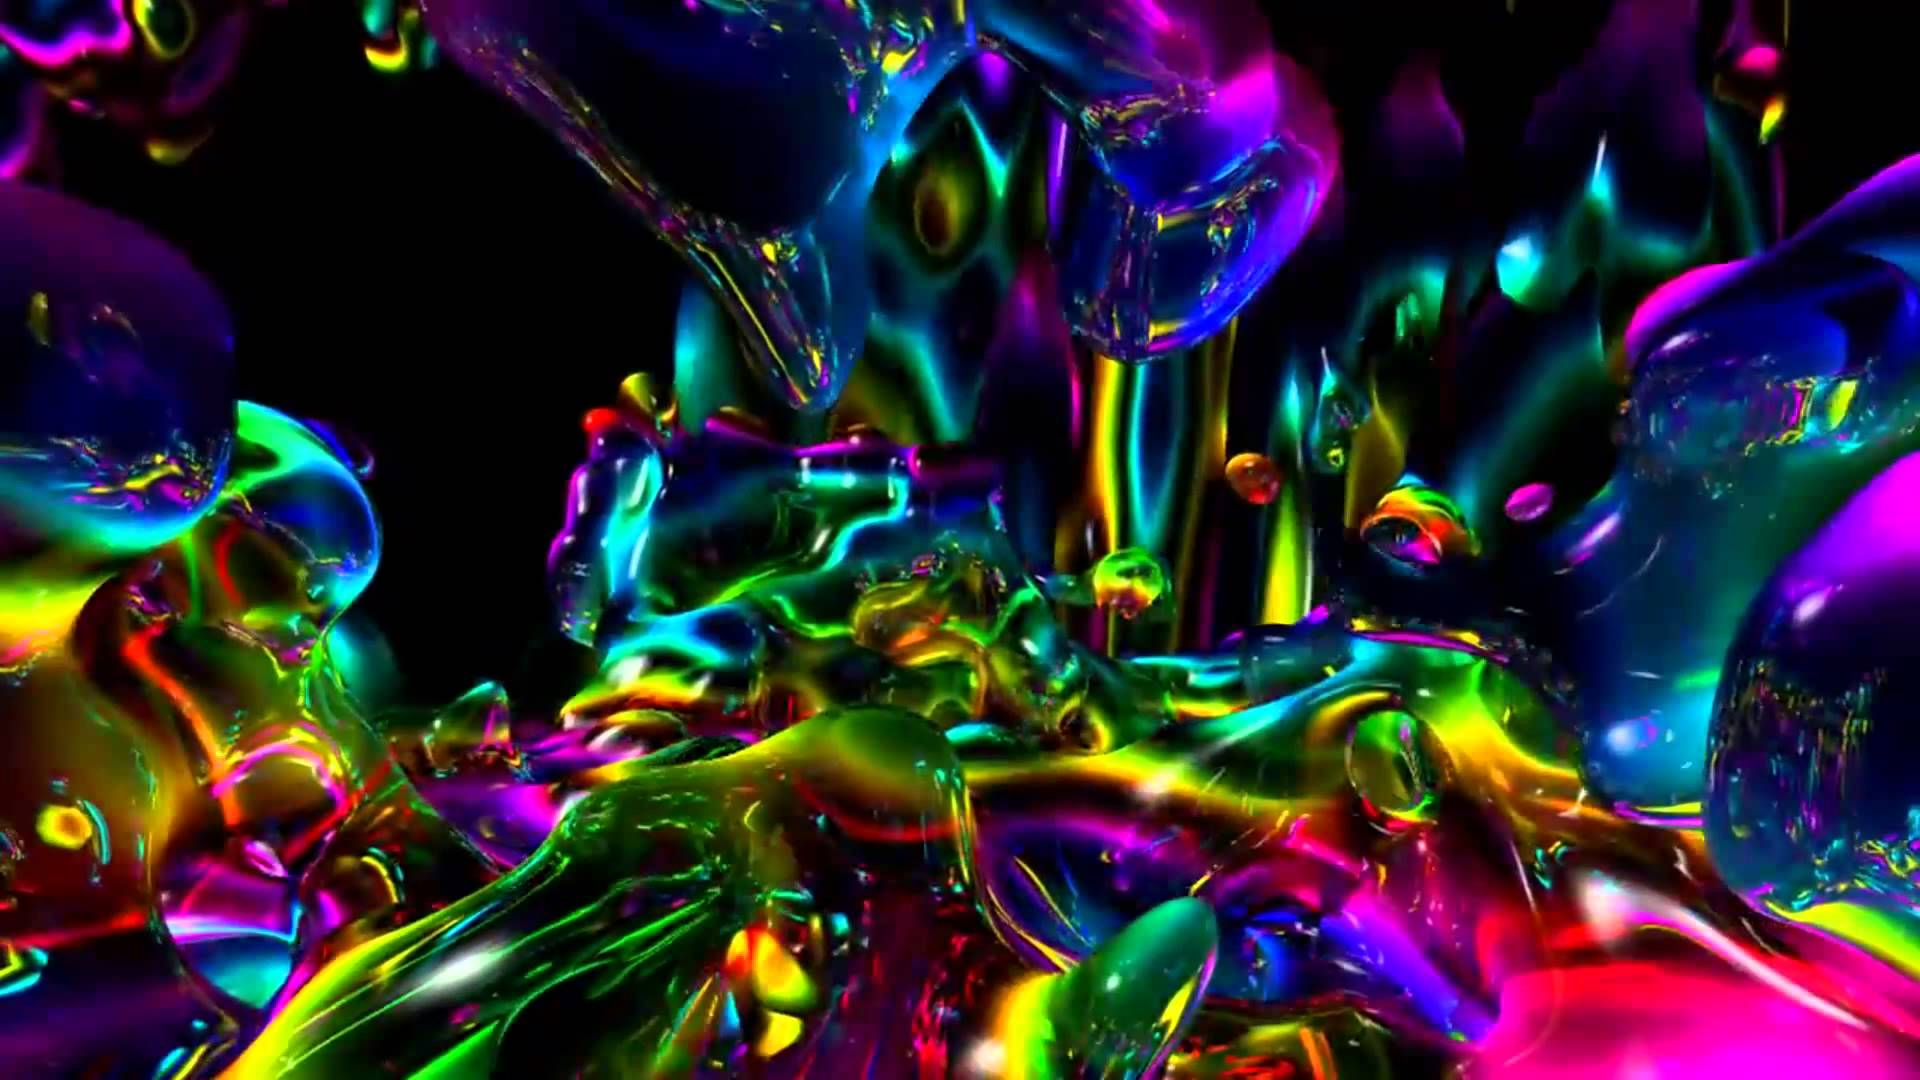 Free Download Displaying 15 Images For 1080p Hd Wallpaper Trippy